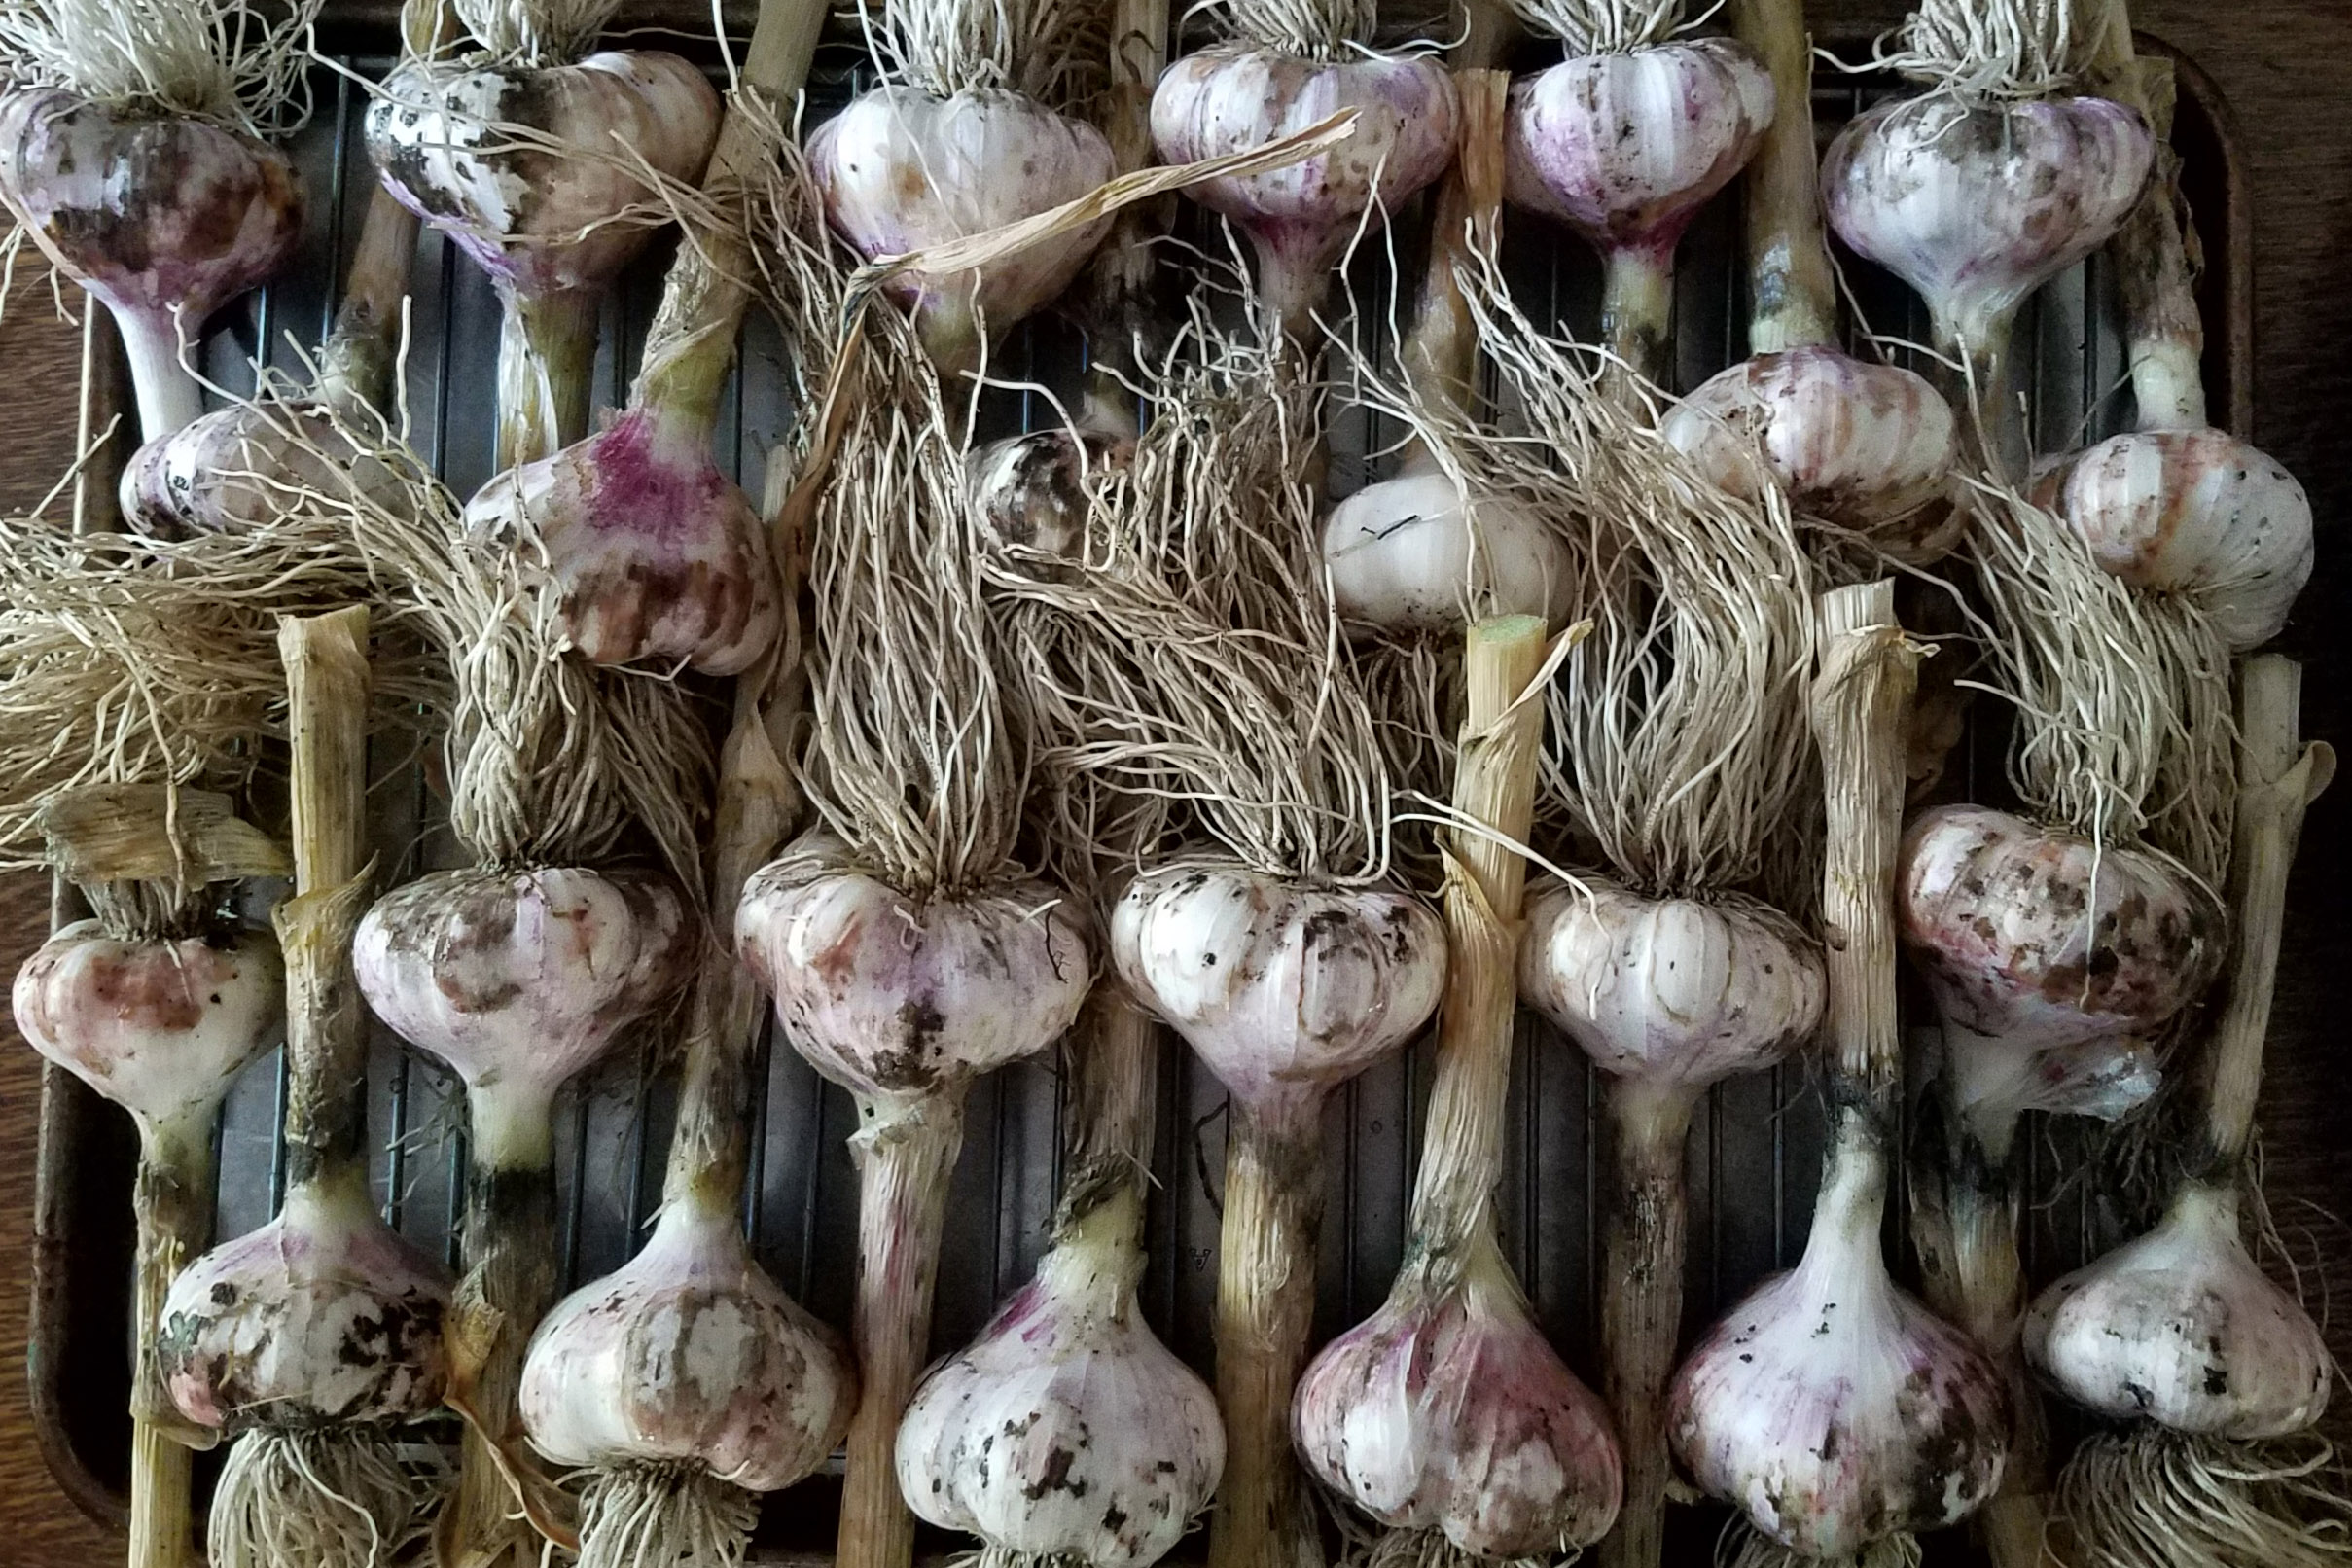 Growing garlic for beginners